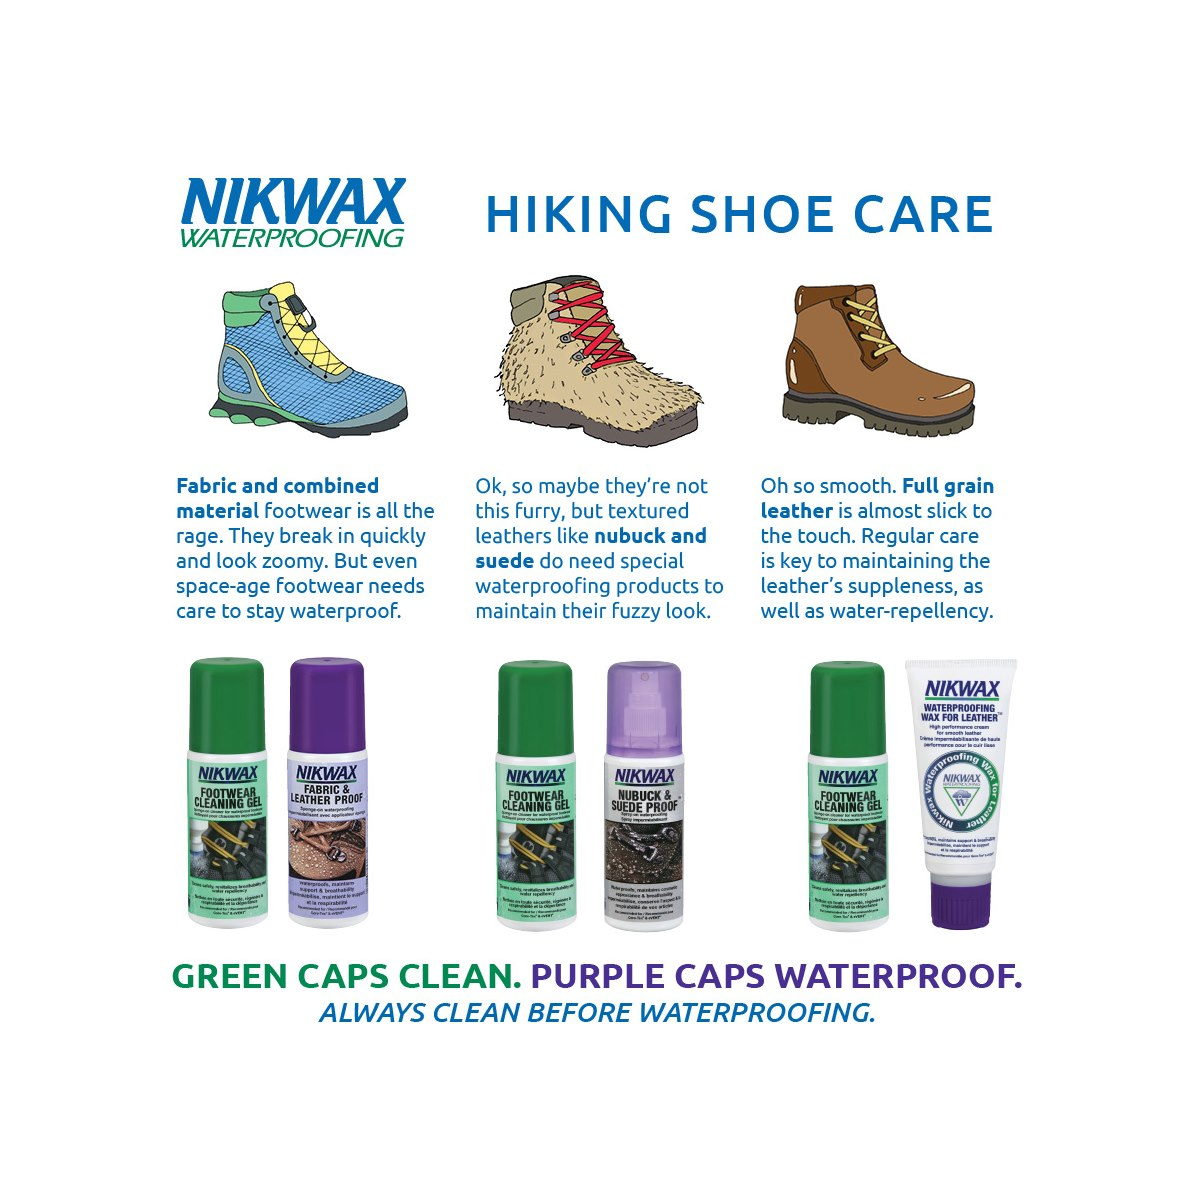 Nikwax Hiking Shoe Care Guide